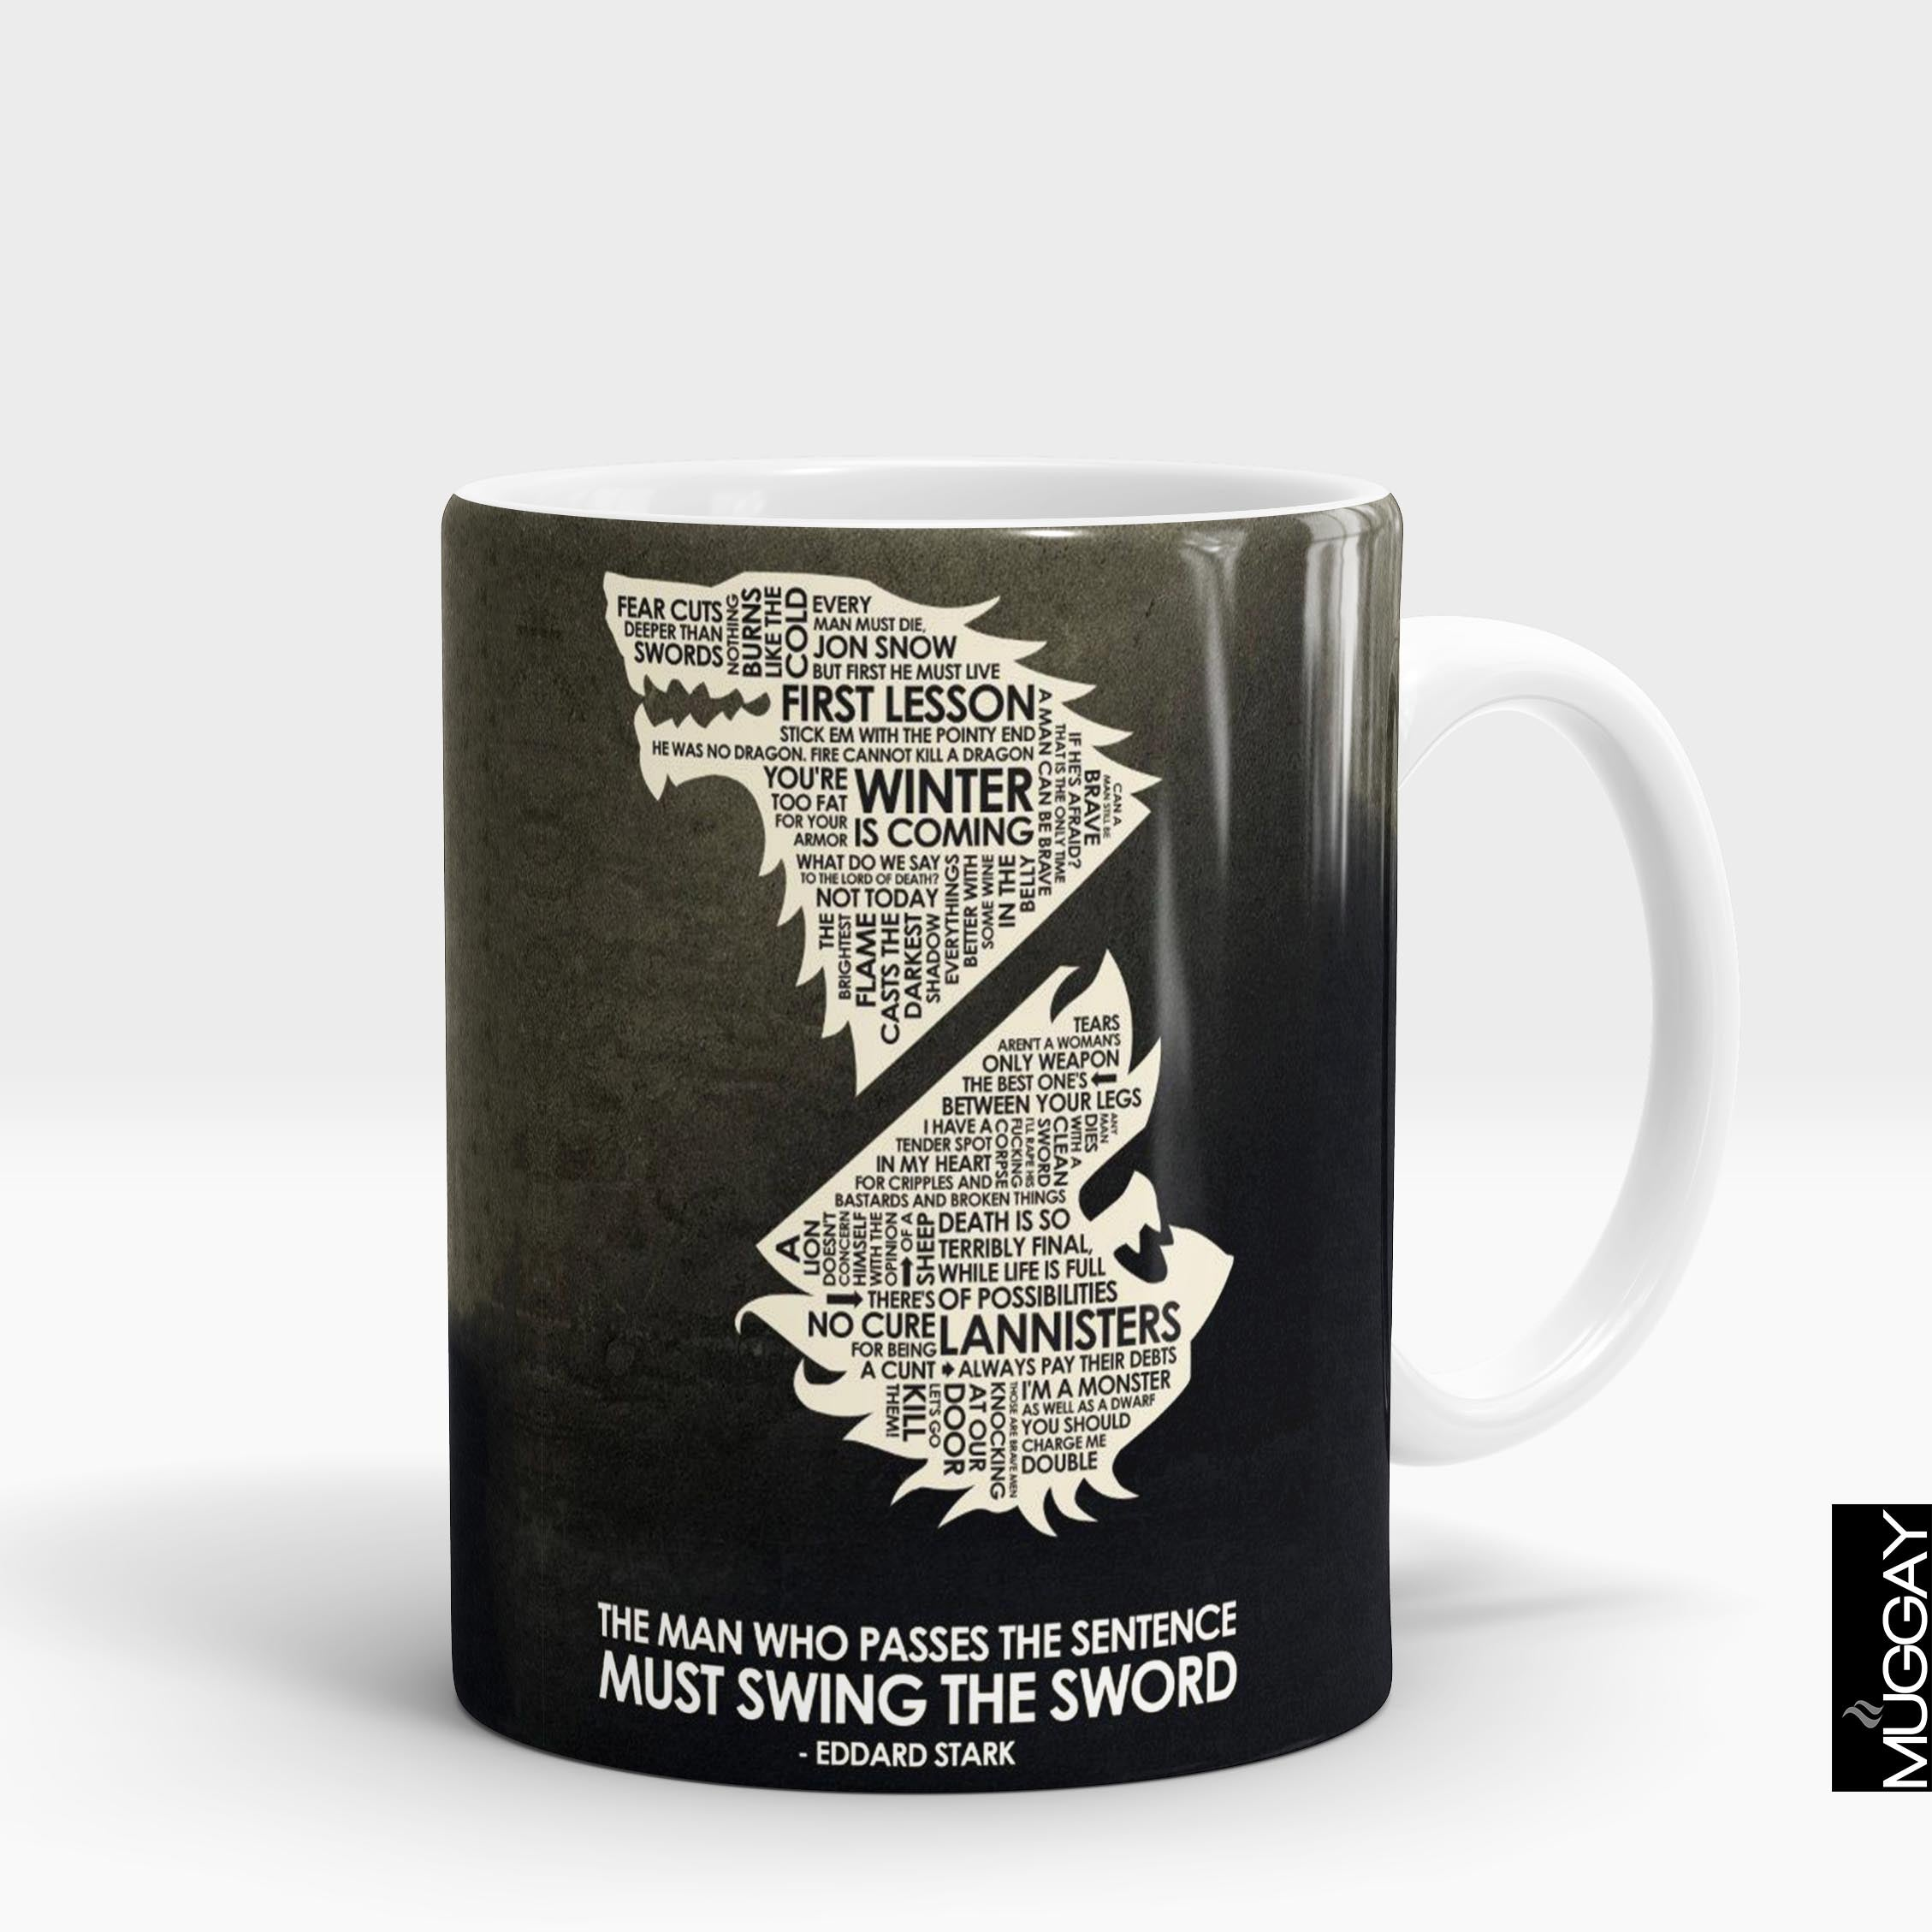 Game of thrones mugs -21